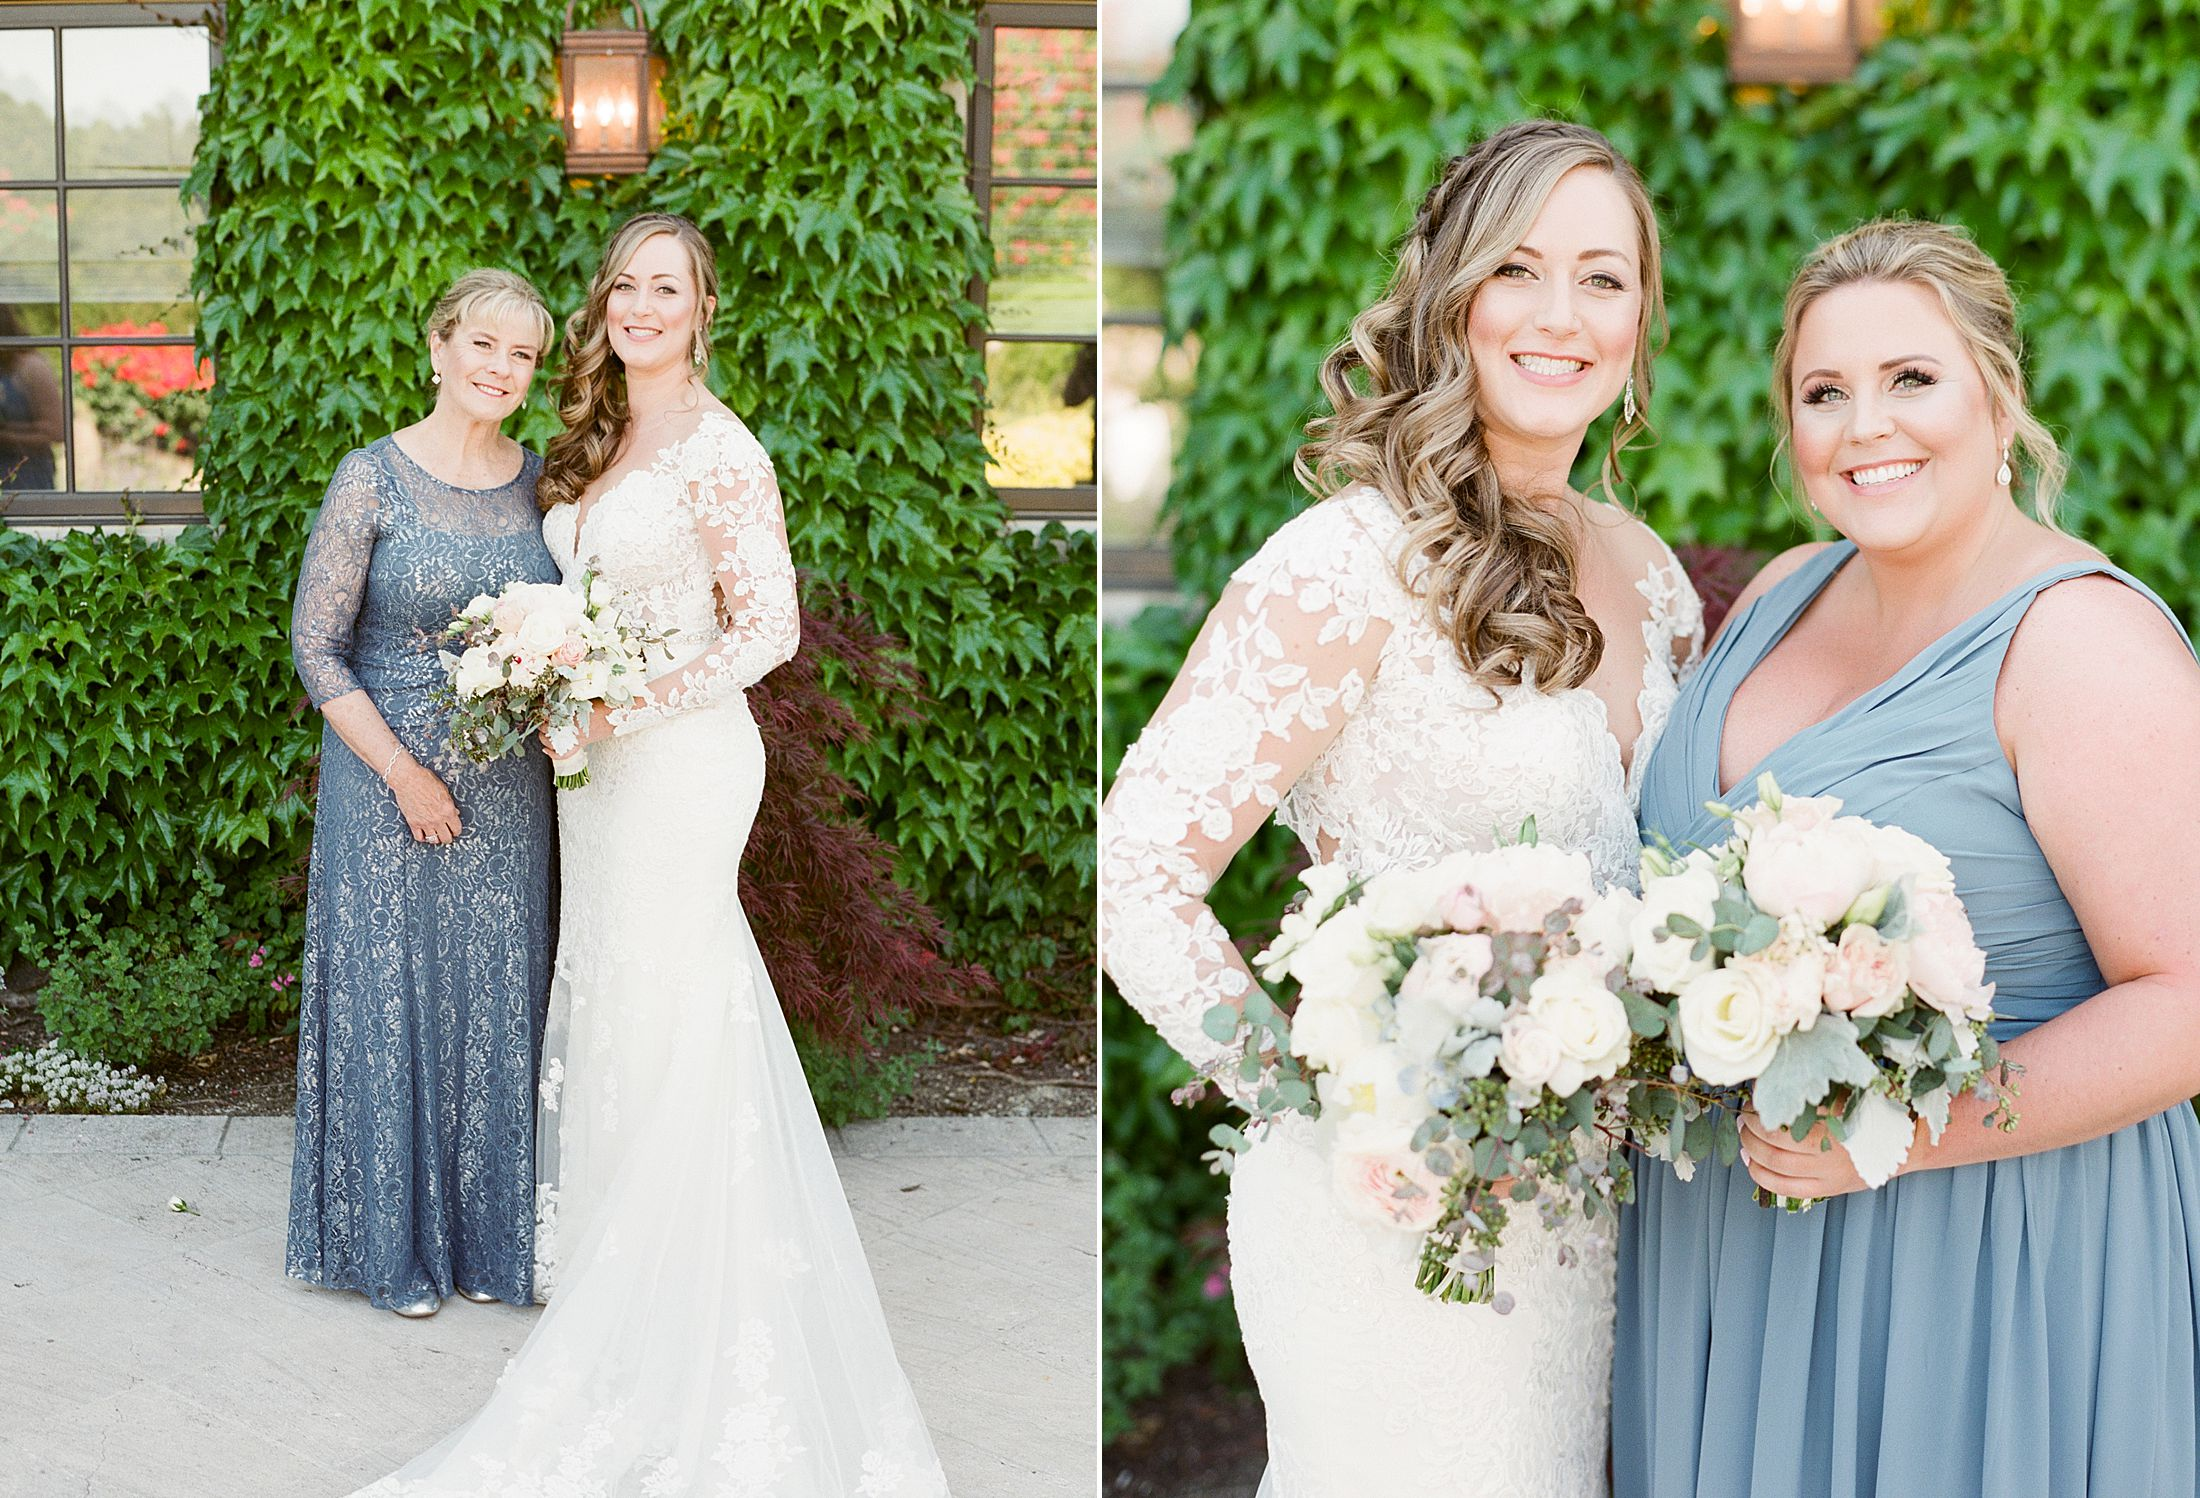 Clos LaChance Winery Wedding - Ashley Baumgartner - Kat & Kurt - Morgan Hill Wedding - Winery Wedding - Bay Area Photographer - Sacramento Wedding Photographer_0027.jpg